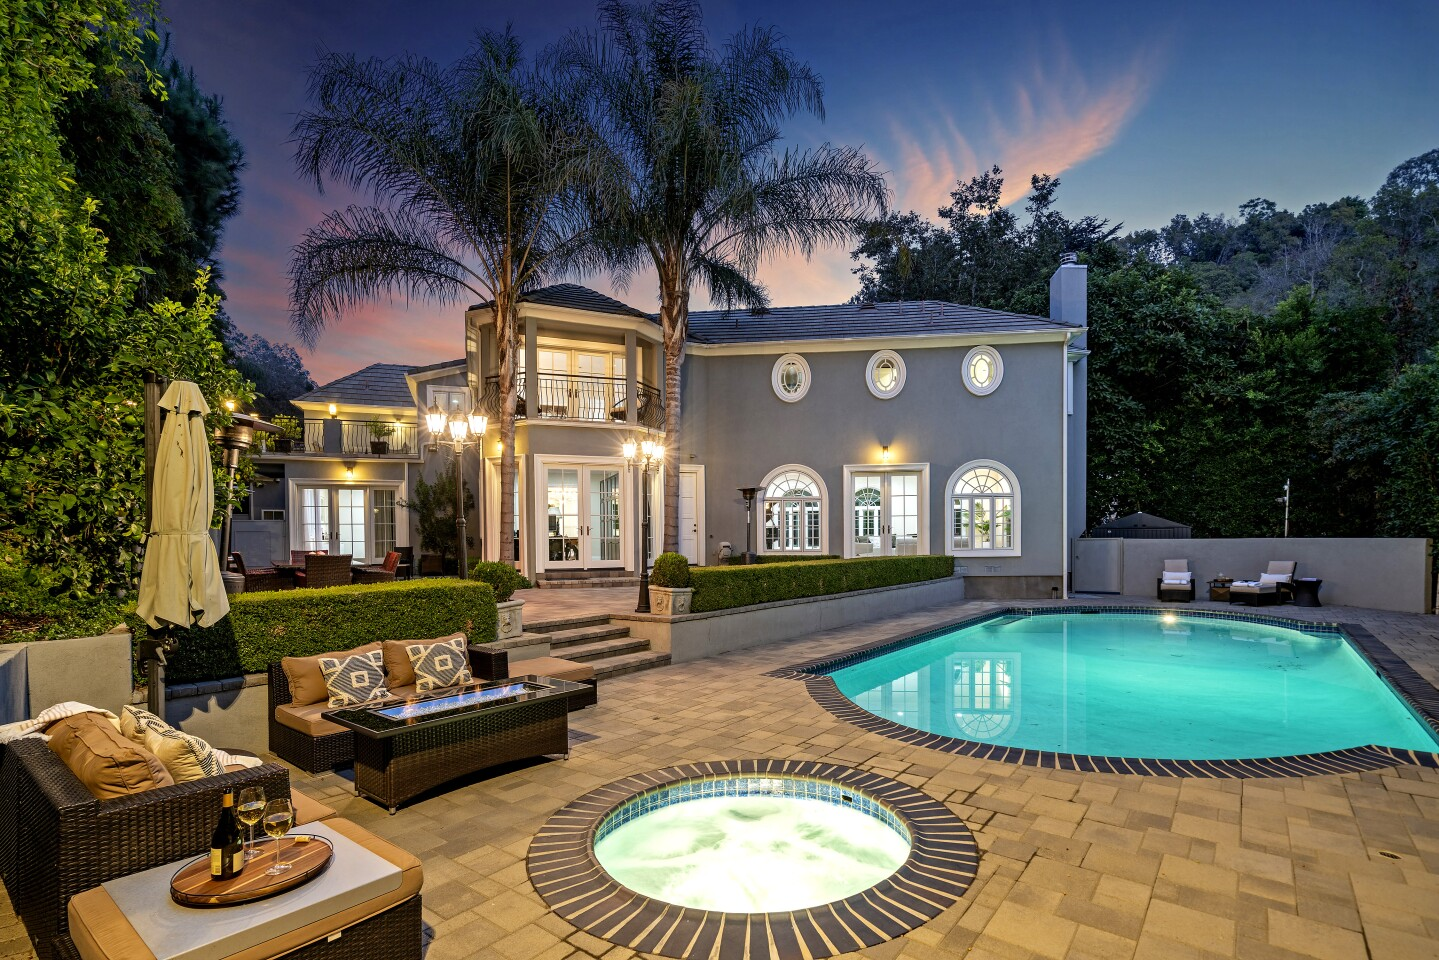 Built in the 1920s for Golden Age of Hollywood actor Errol Flynn, the stylish estate includes a secluded backyard dotted with vintage lampposts and outdoor heaters.